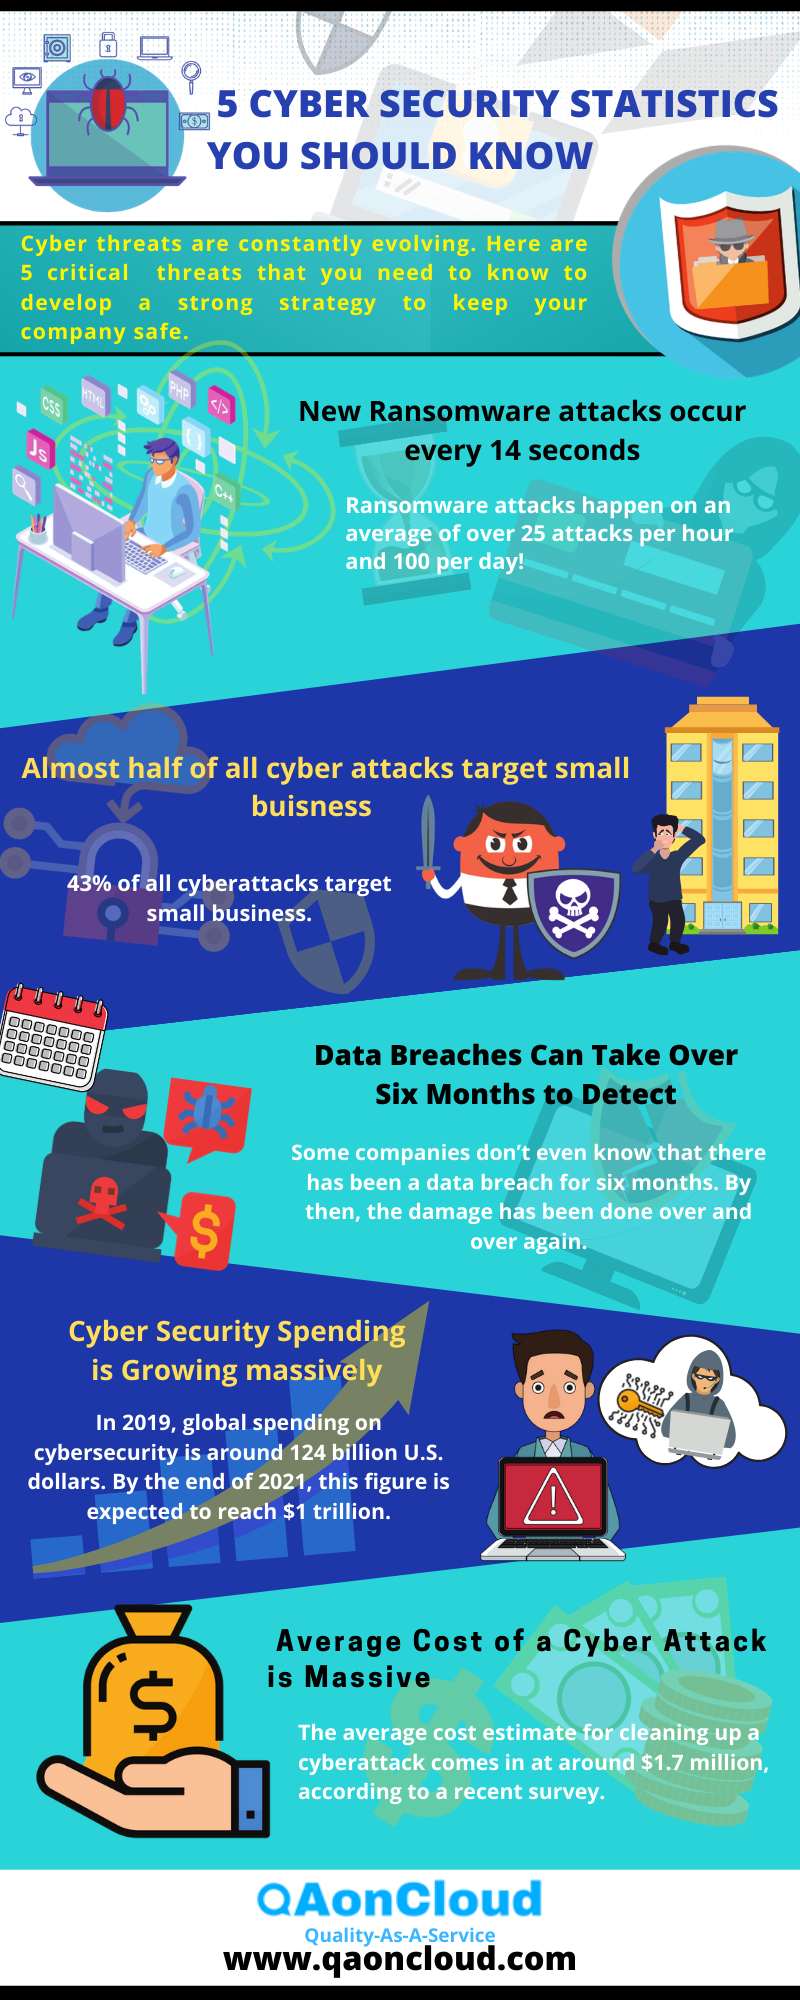 STATISTICS ON CYBERSECURITY